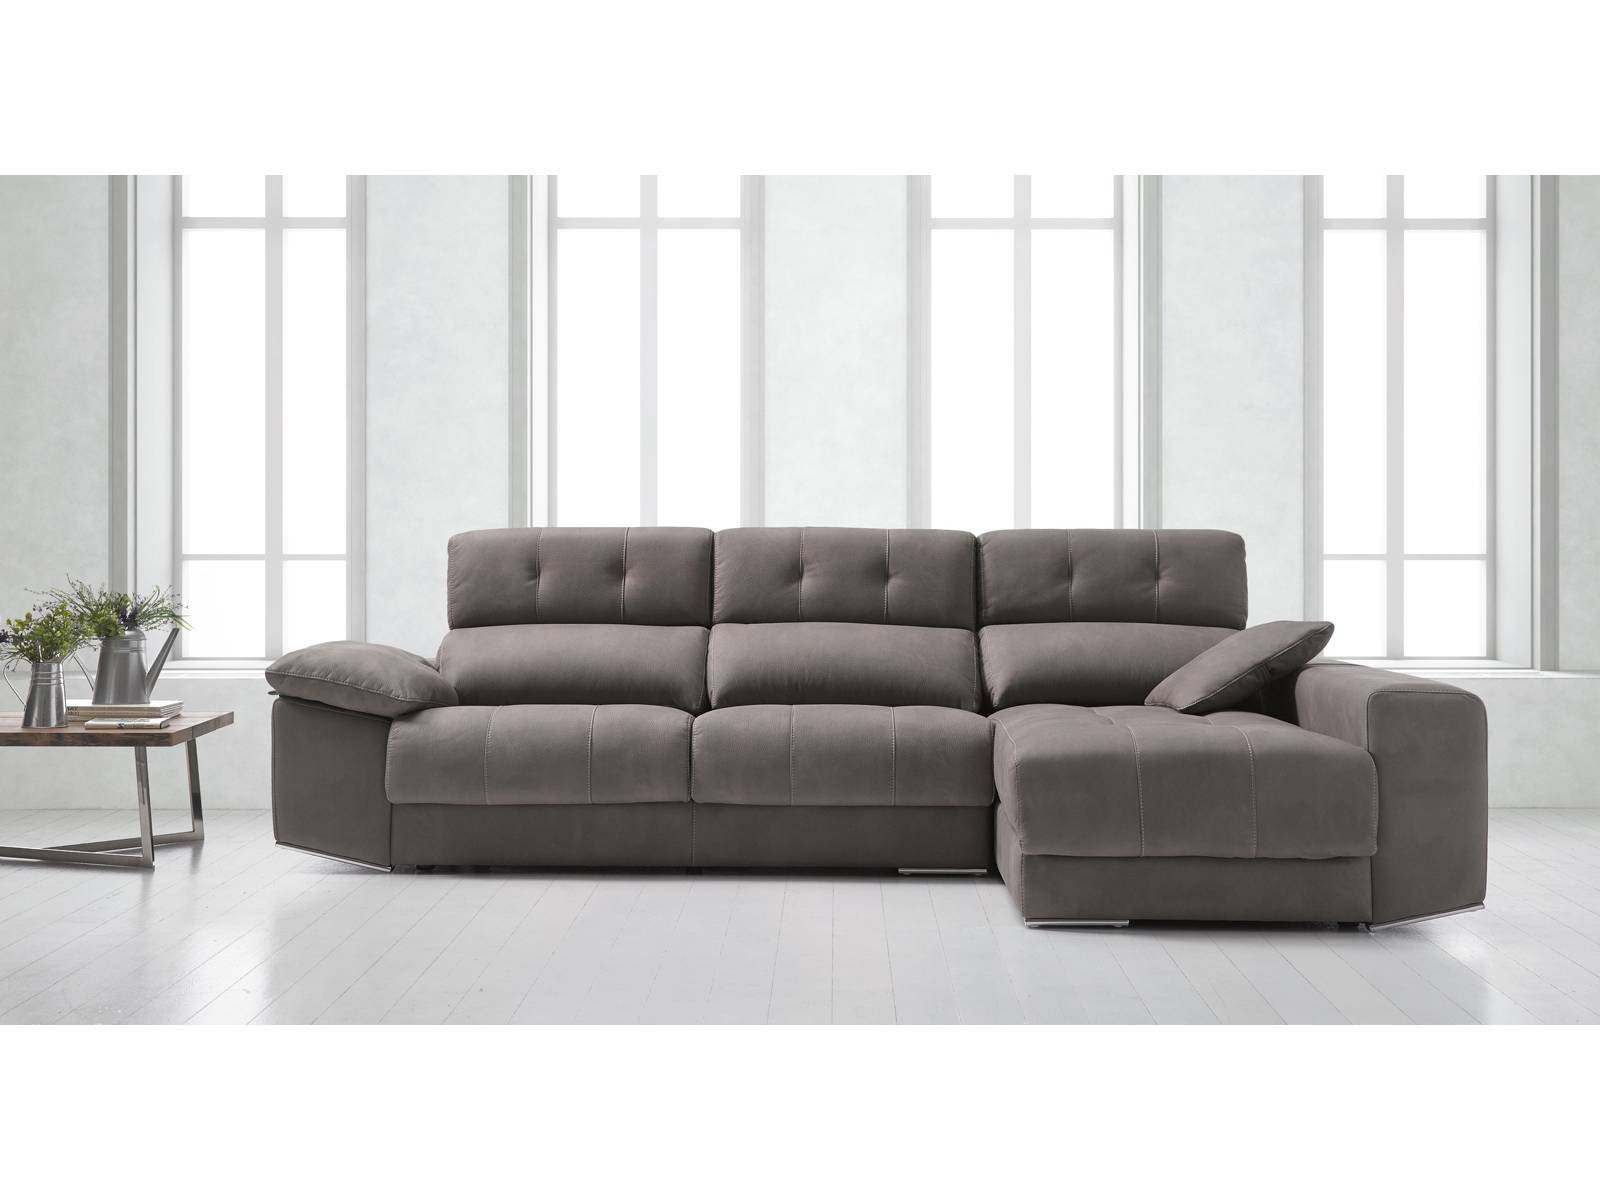 Sofa Chaise Longue Barato Innovador sofas Chaise Longue Barcelona Baratos Of 49  Mejor sofa Chaise Longue Barato